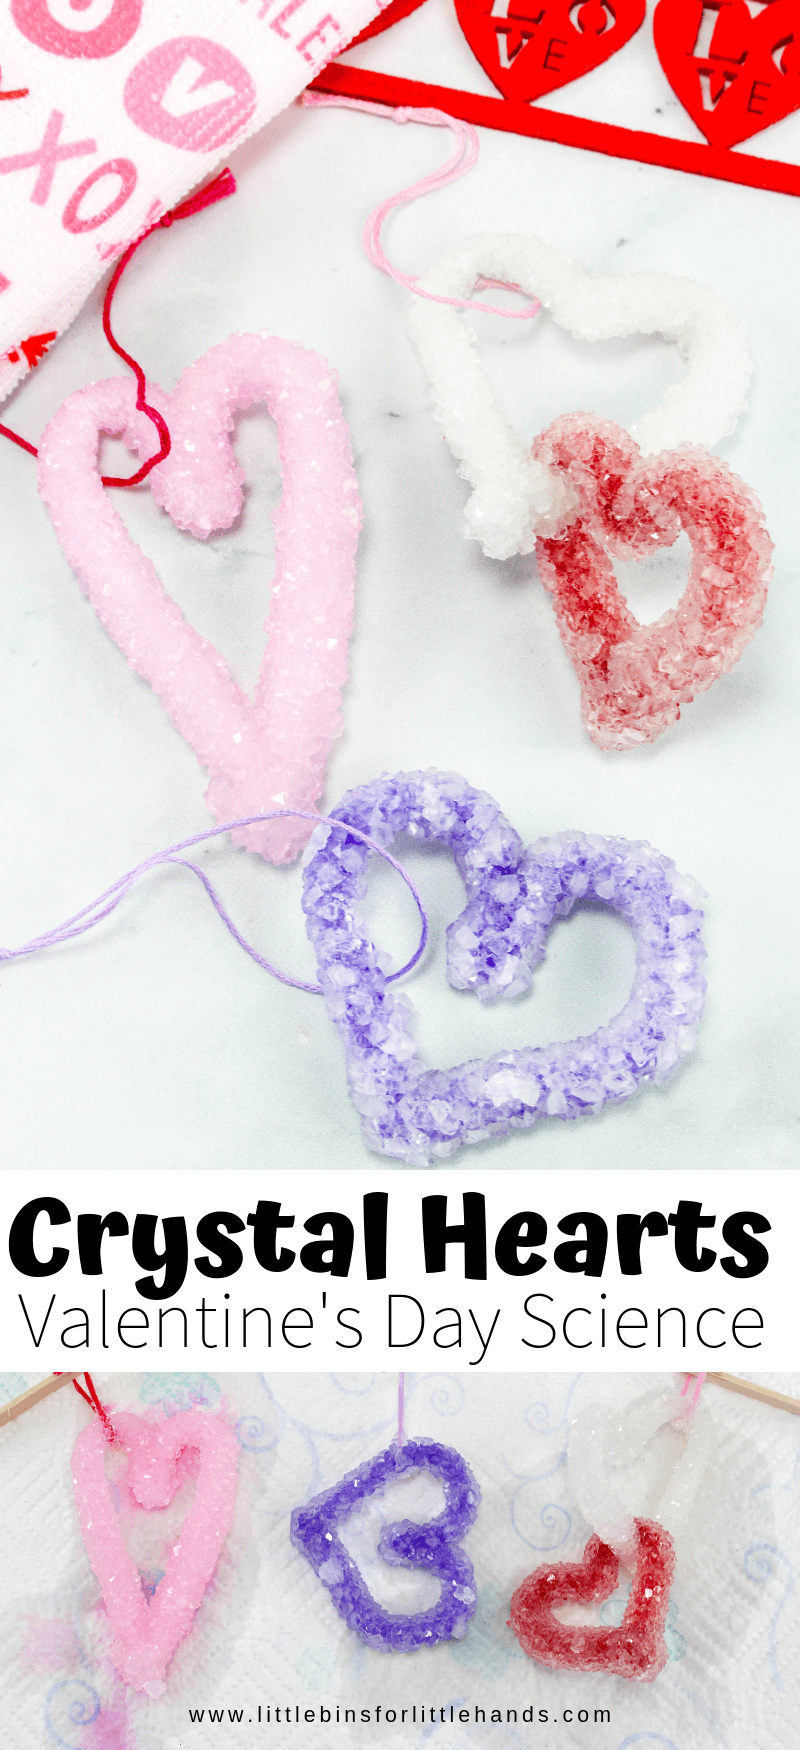 Crystal Hearts Valentines Science Experiment #scienceexperimentsforpreschoolers